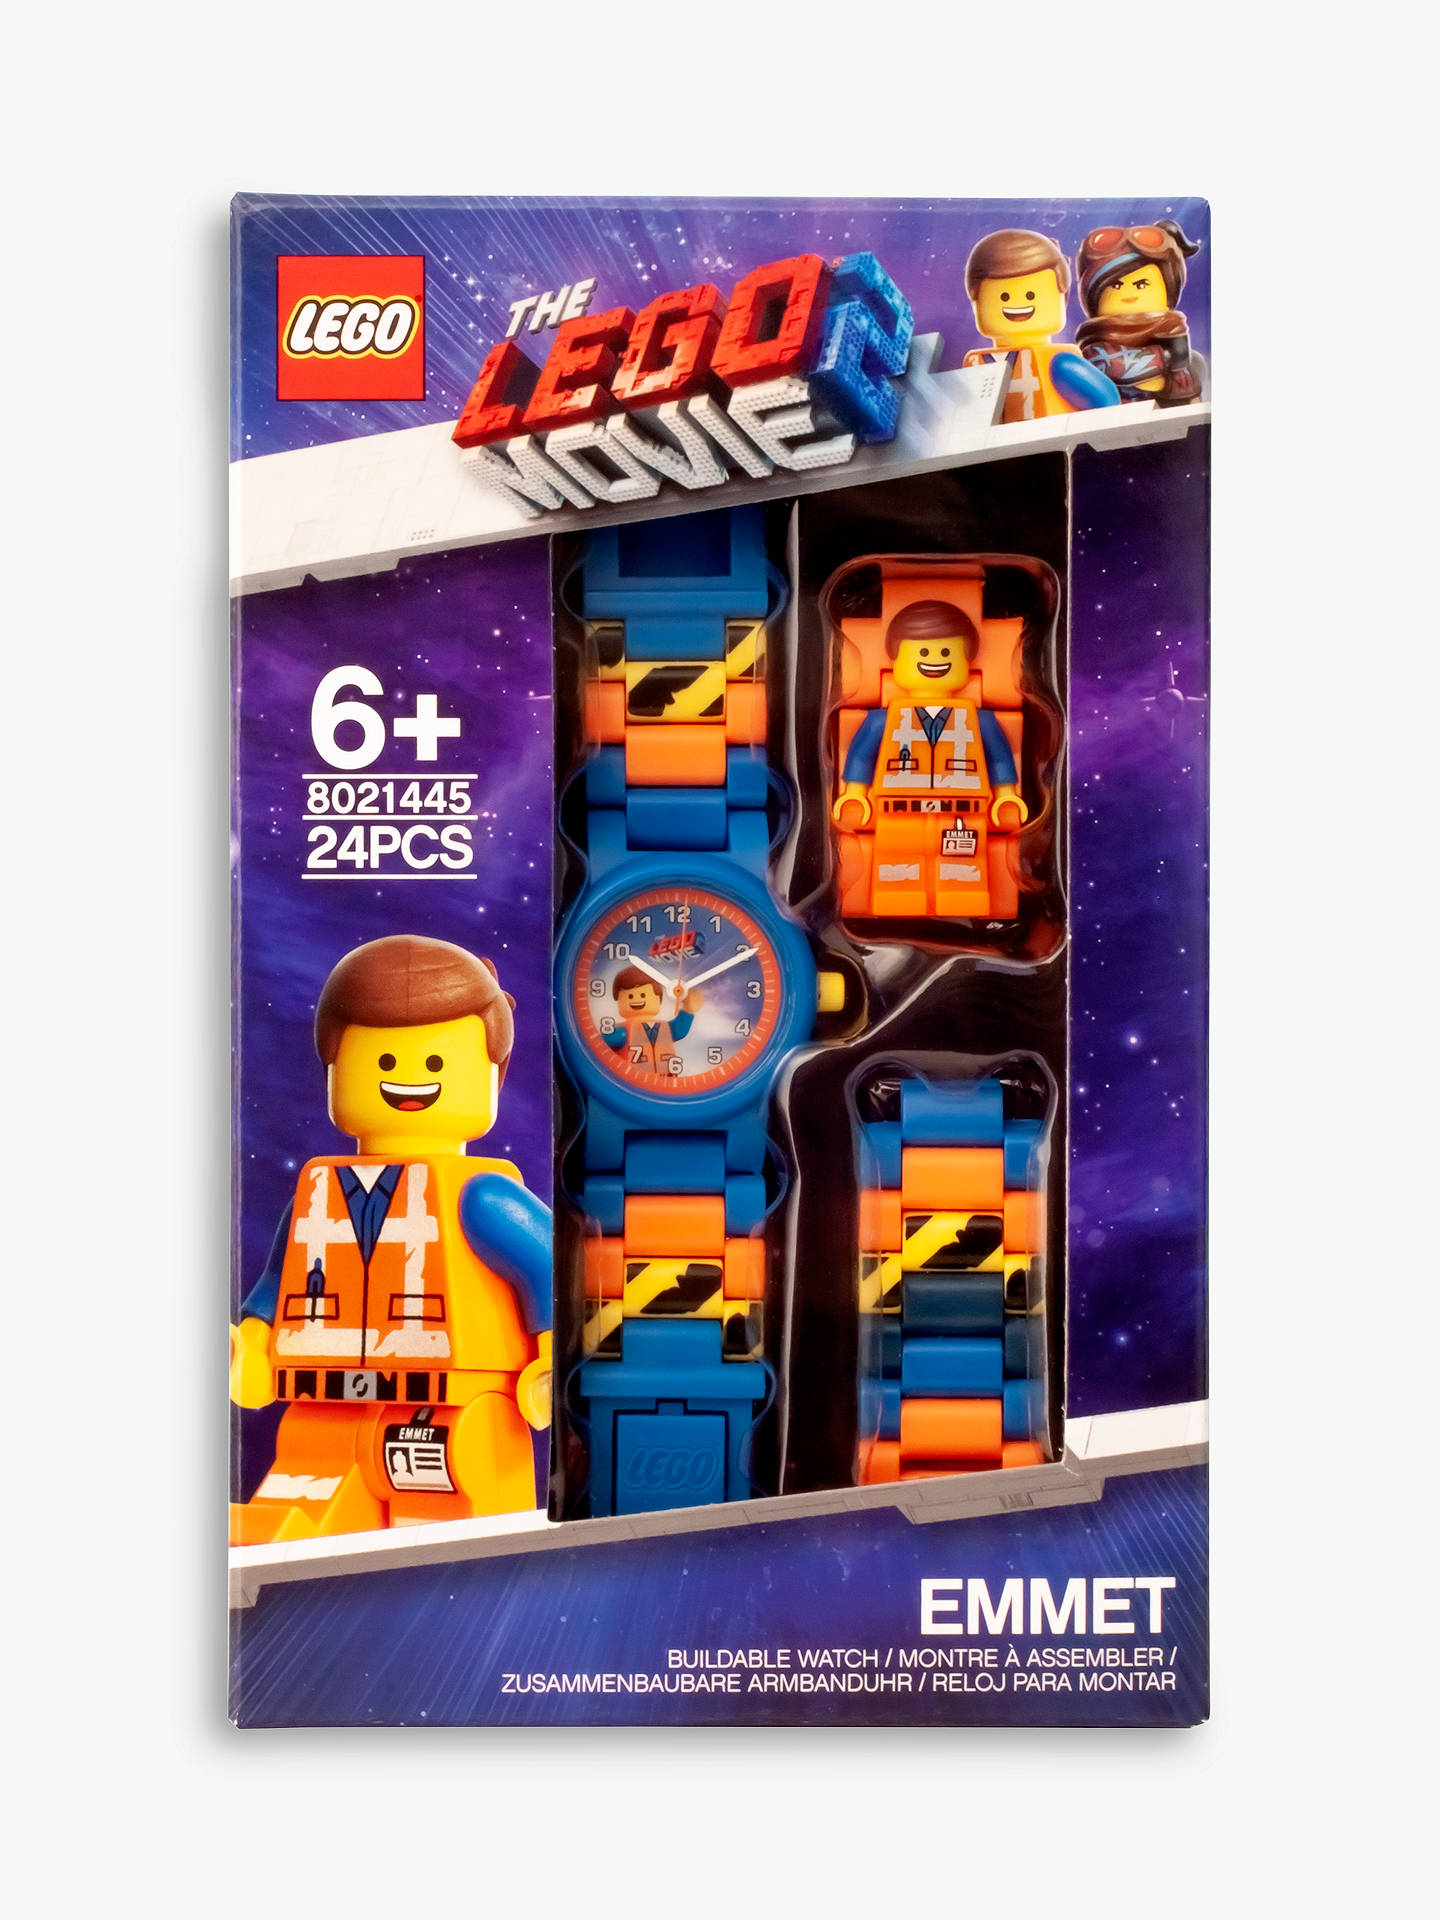 Lego The Lego Movie 2 Emmet Minifigurine Link Watch At John Lewis Partners